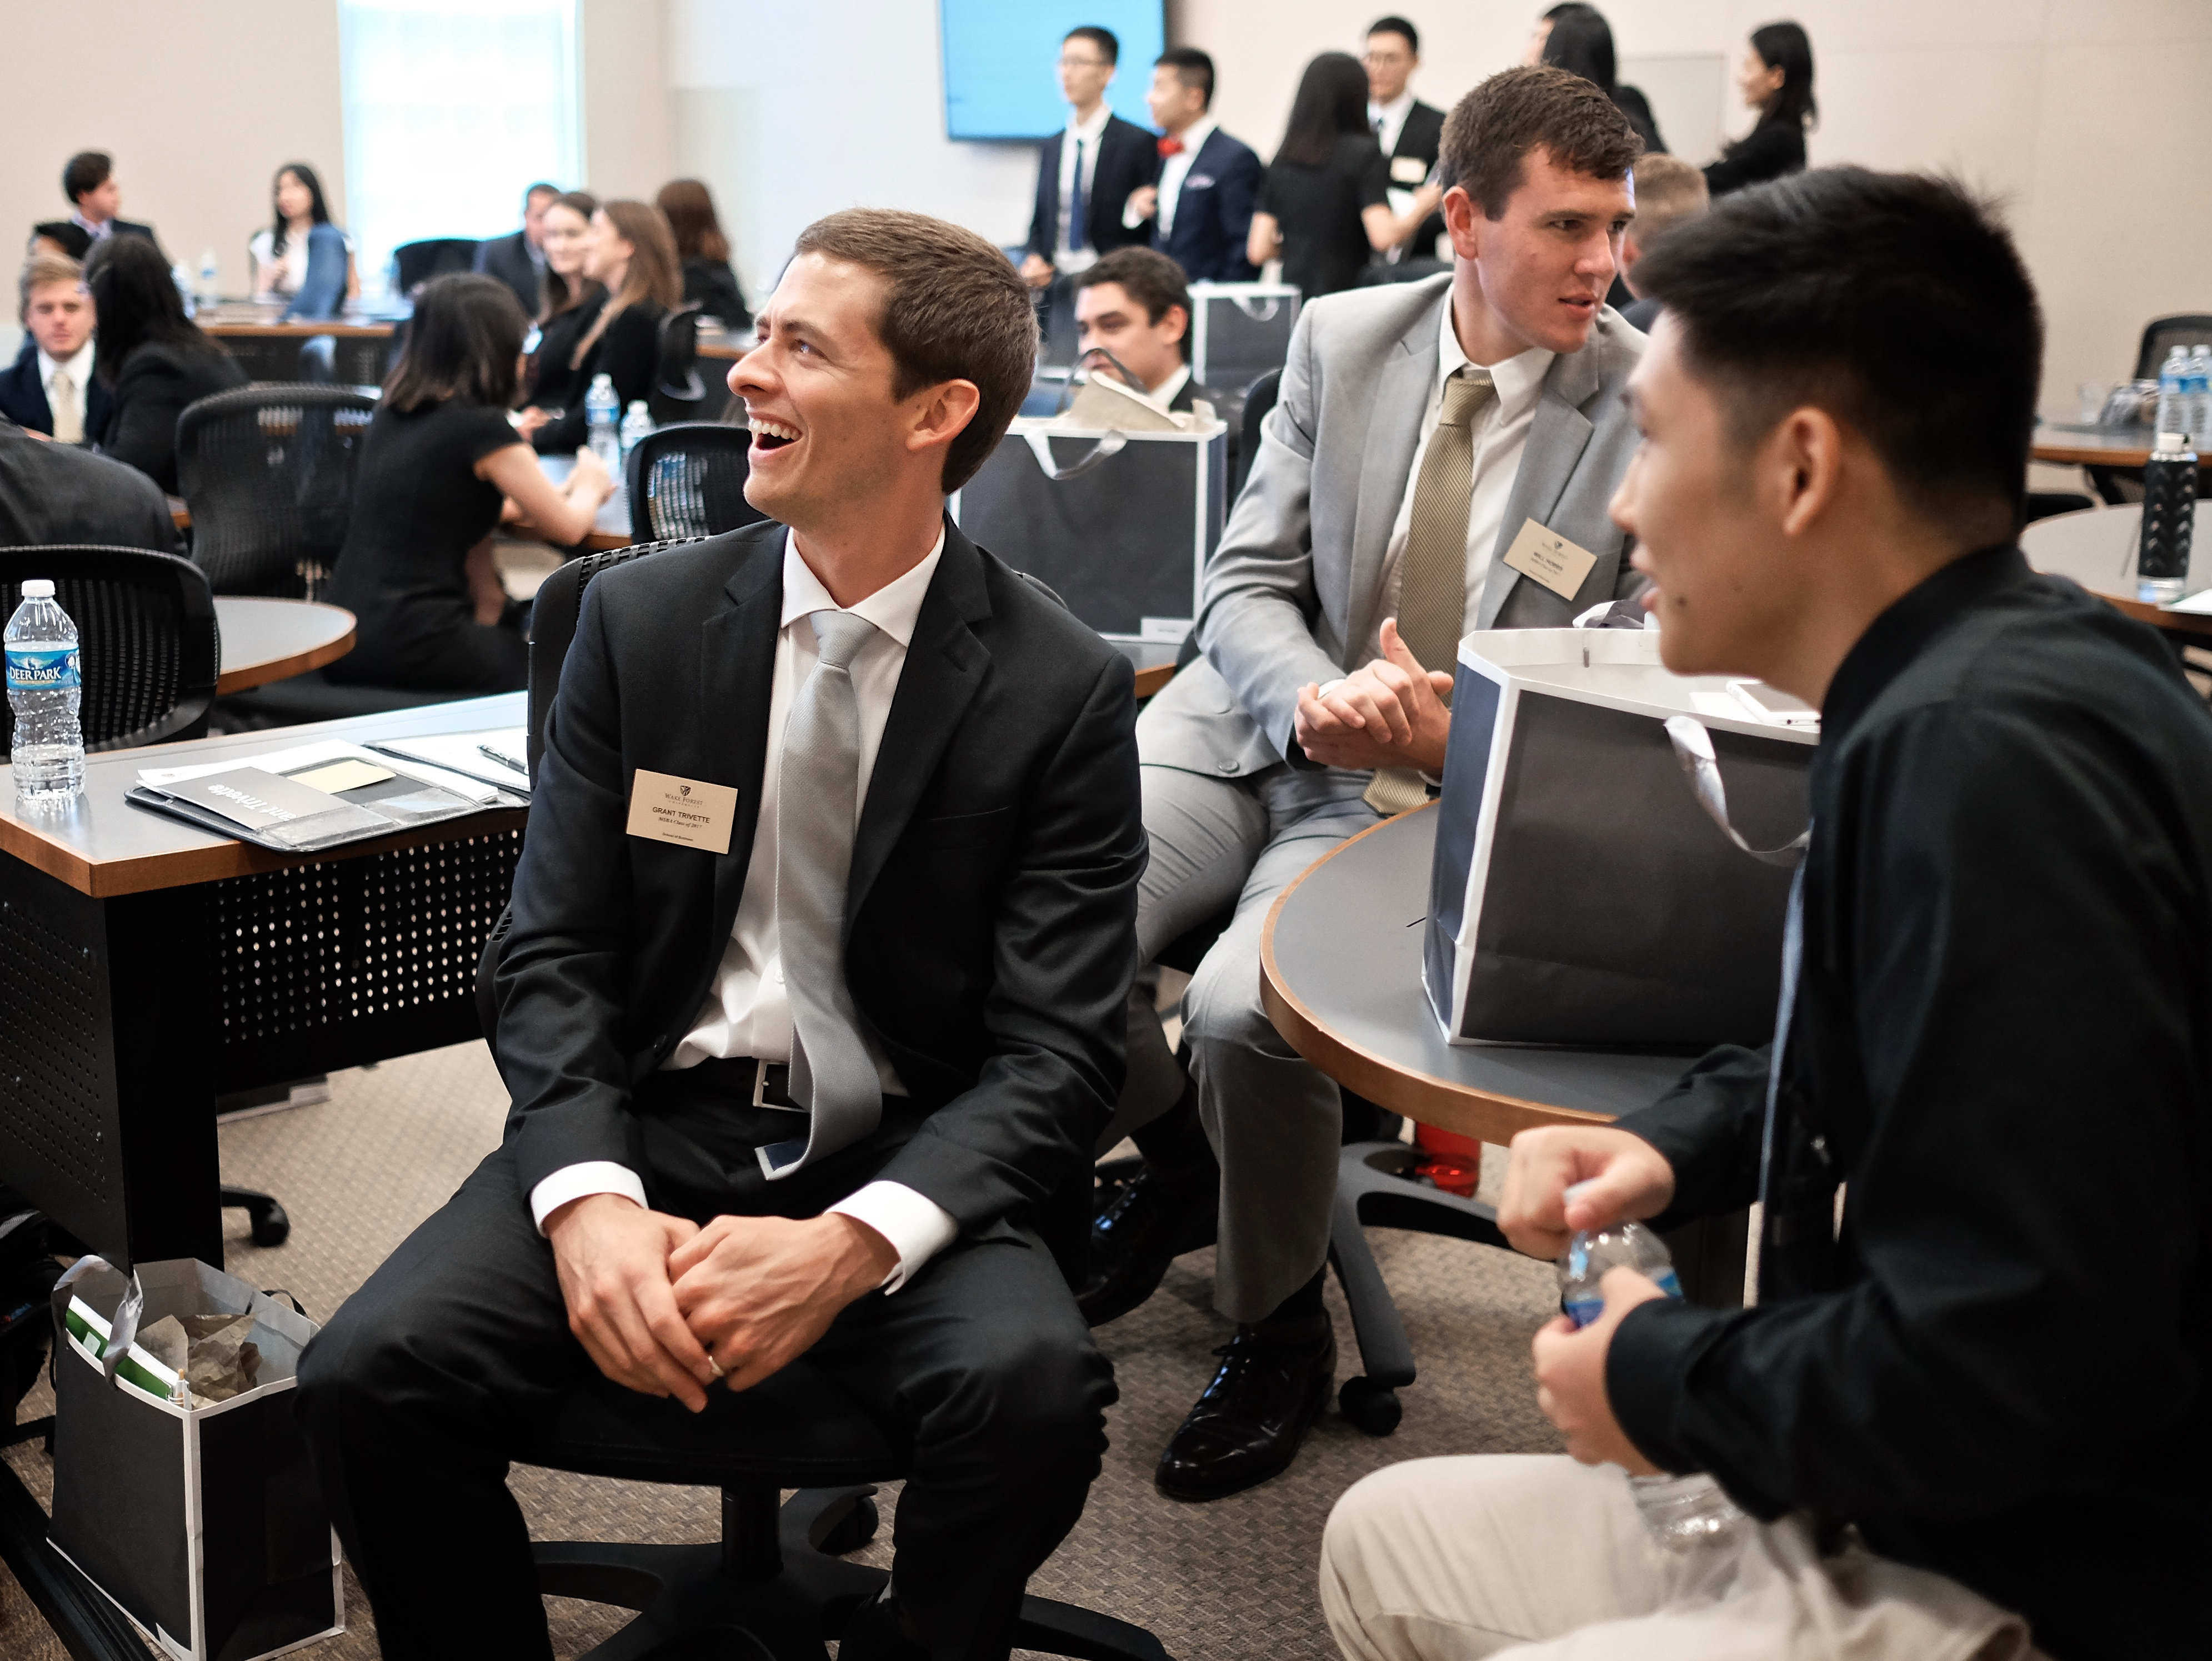 Wake Forest University School of Business held orientation for incoming MSBA students in Farrell Hall 7/7/16.